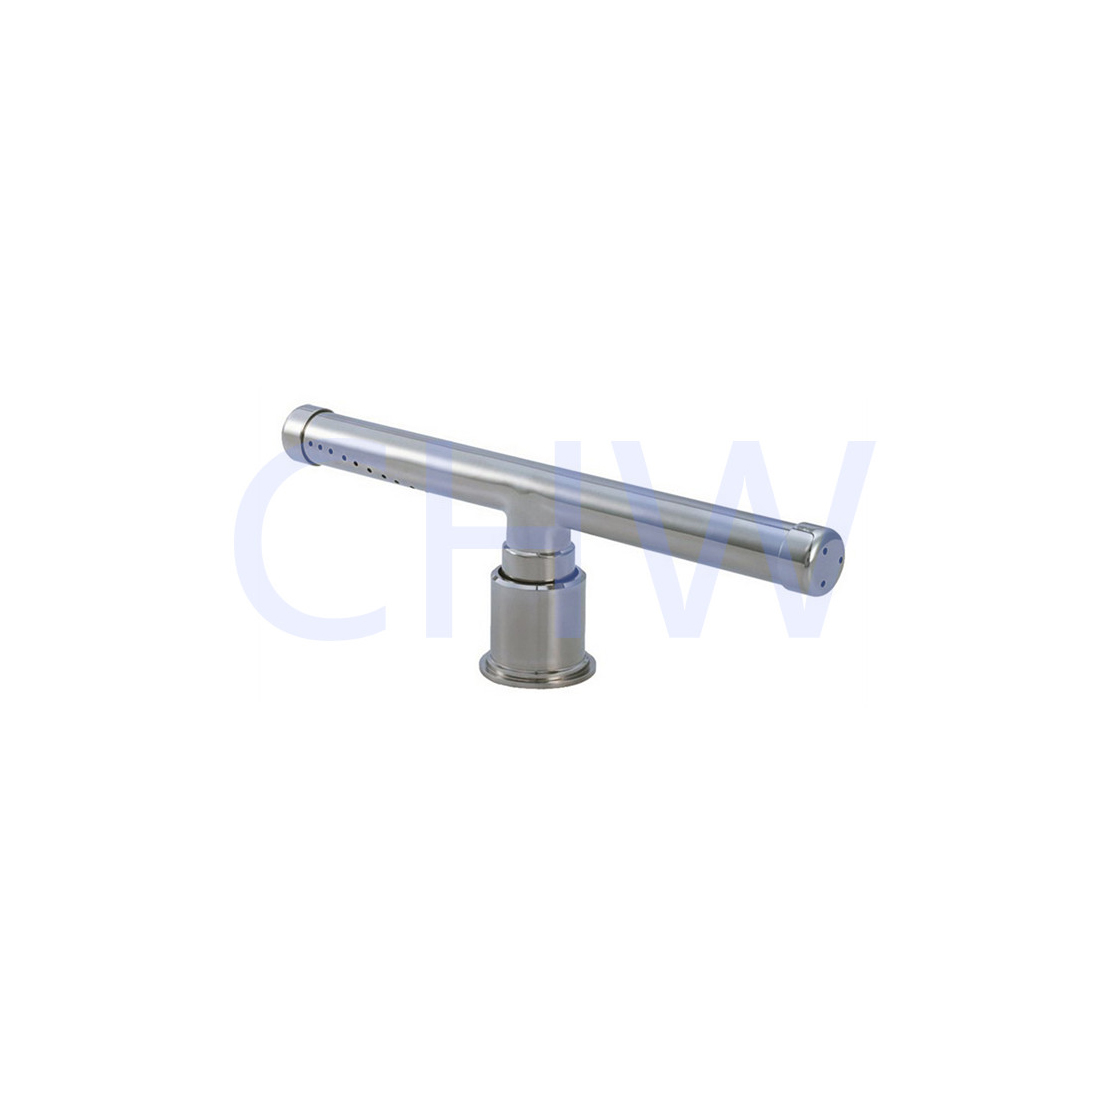 Sanitary stainless steel top quality Welded Rotary Cleaning Ball ss304 ss316L DIN SMS ISO 3A BPE IDF AS BS